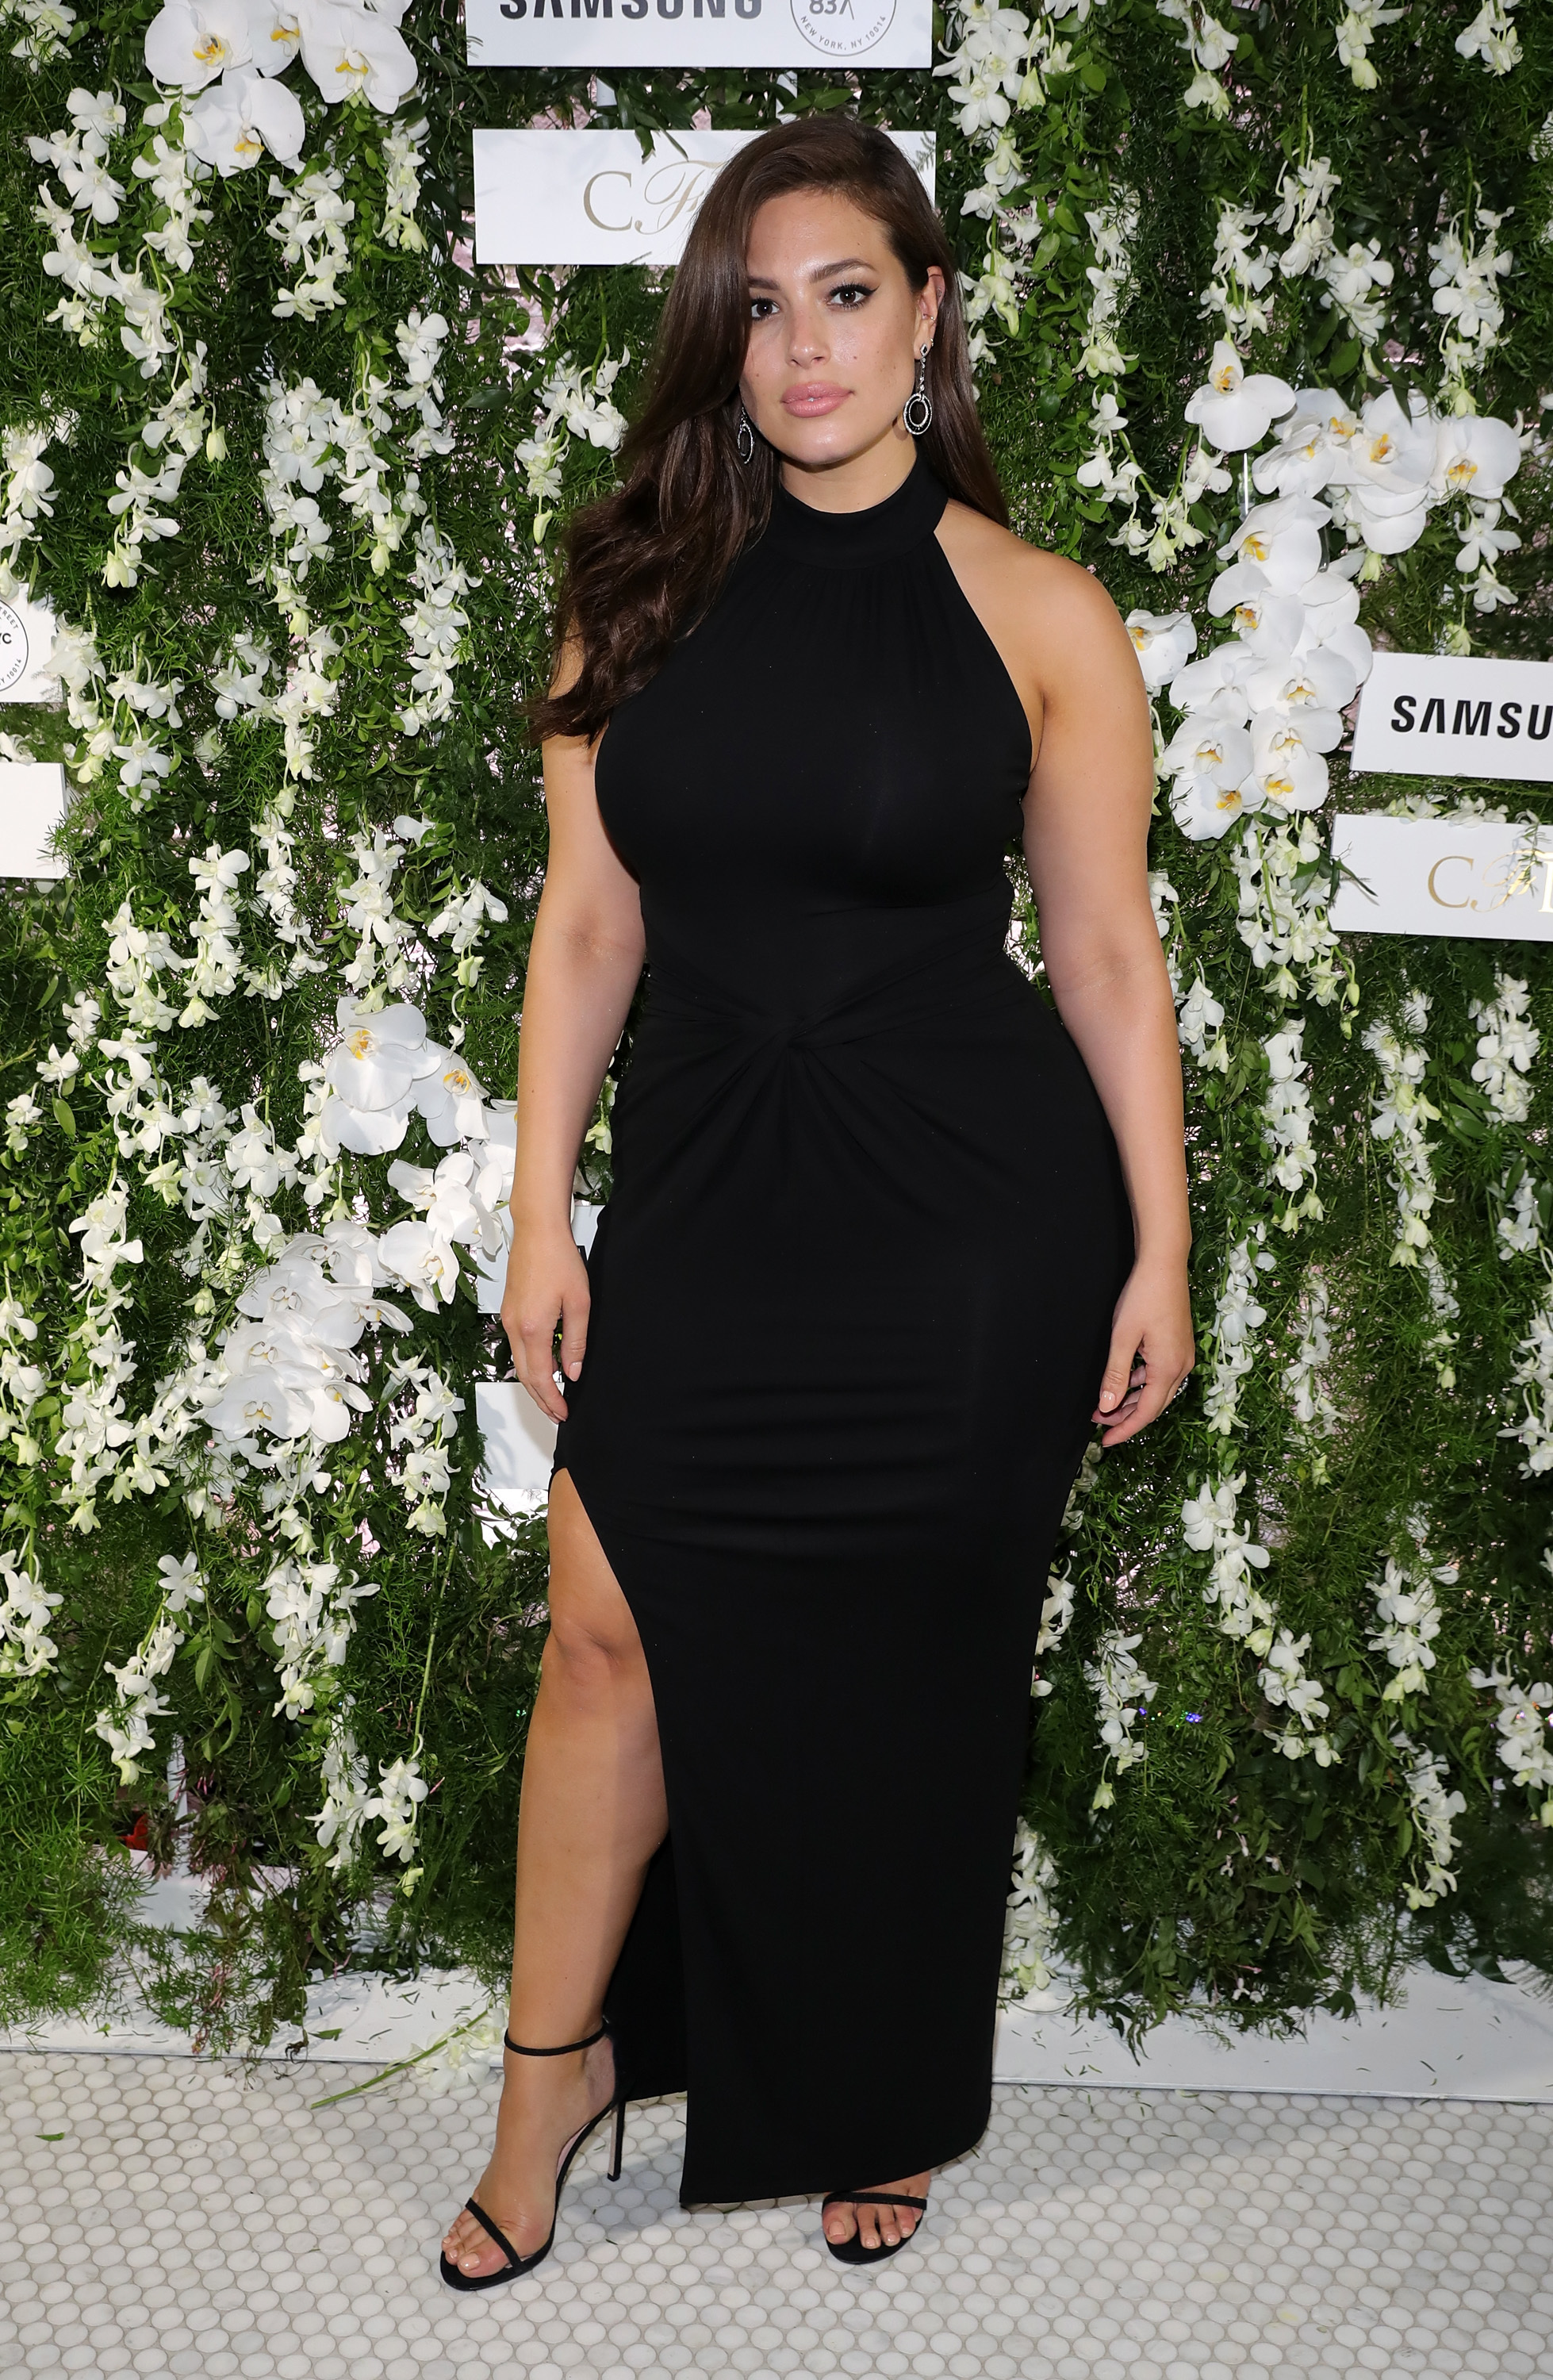 Ashley Graham: 'Let's worry about our own bodies'